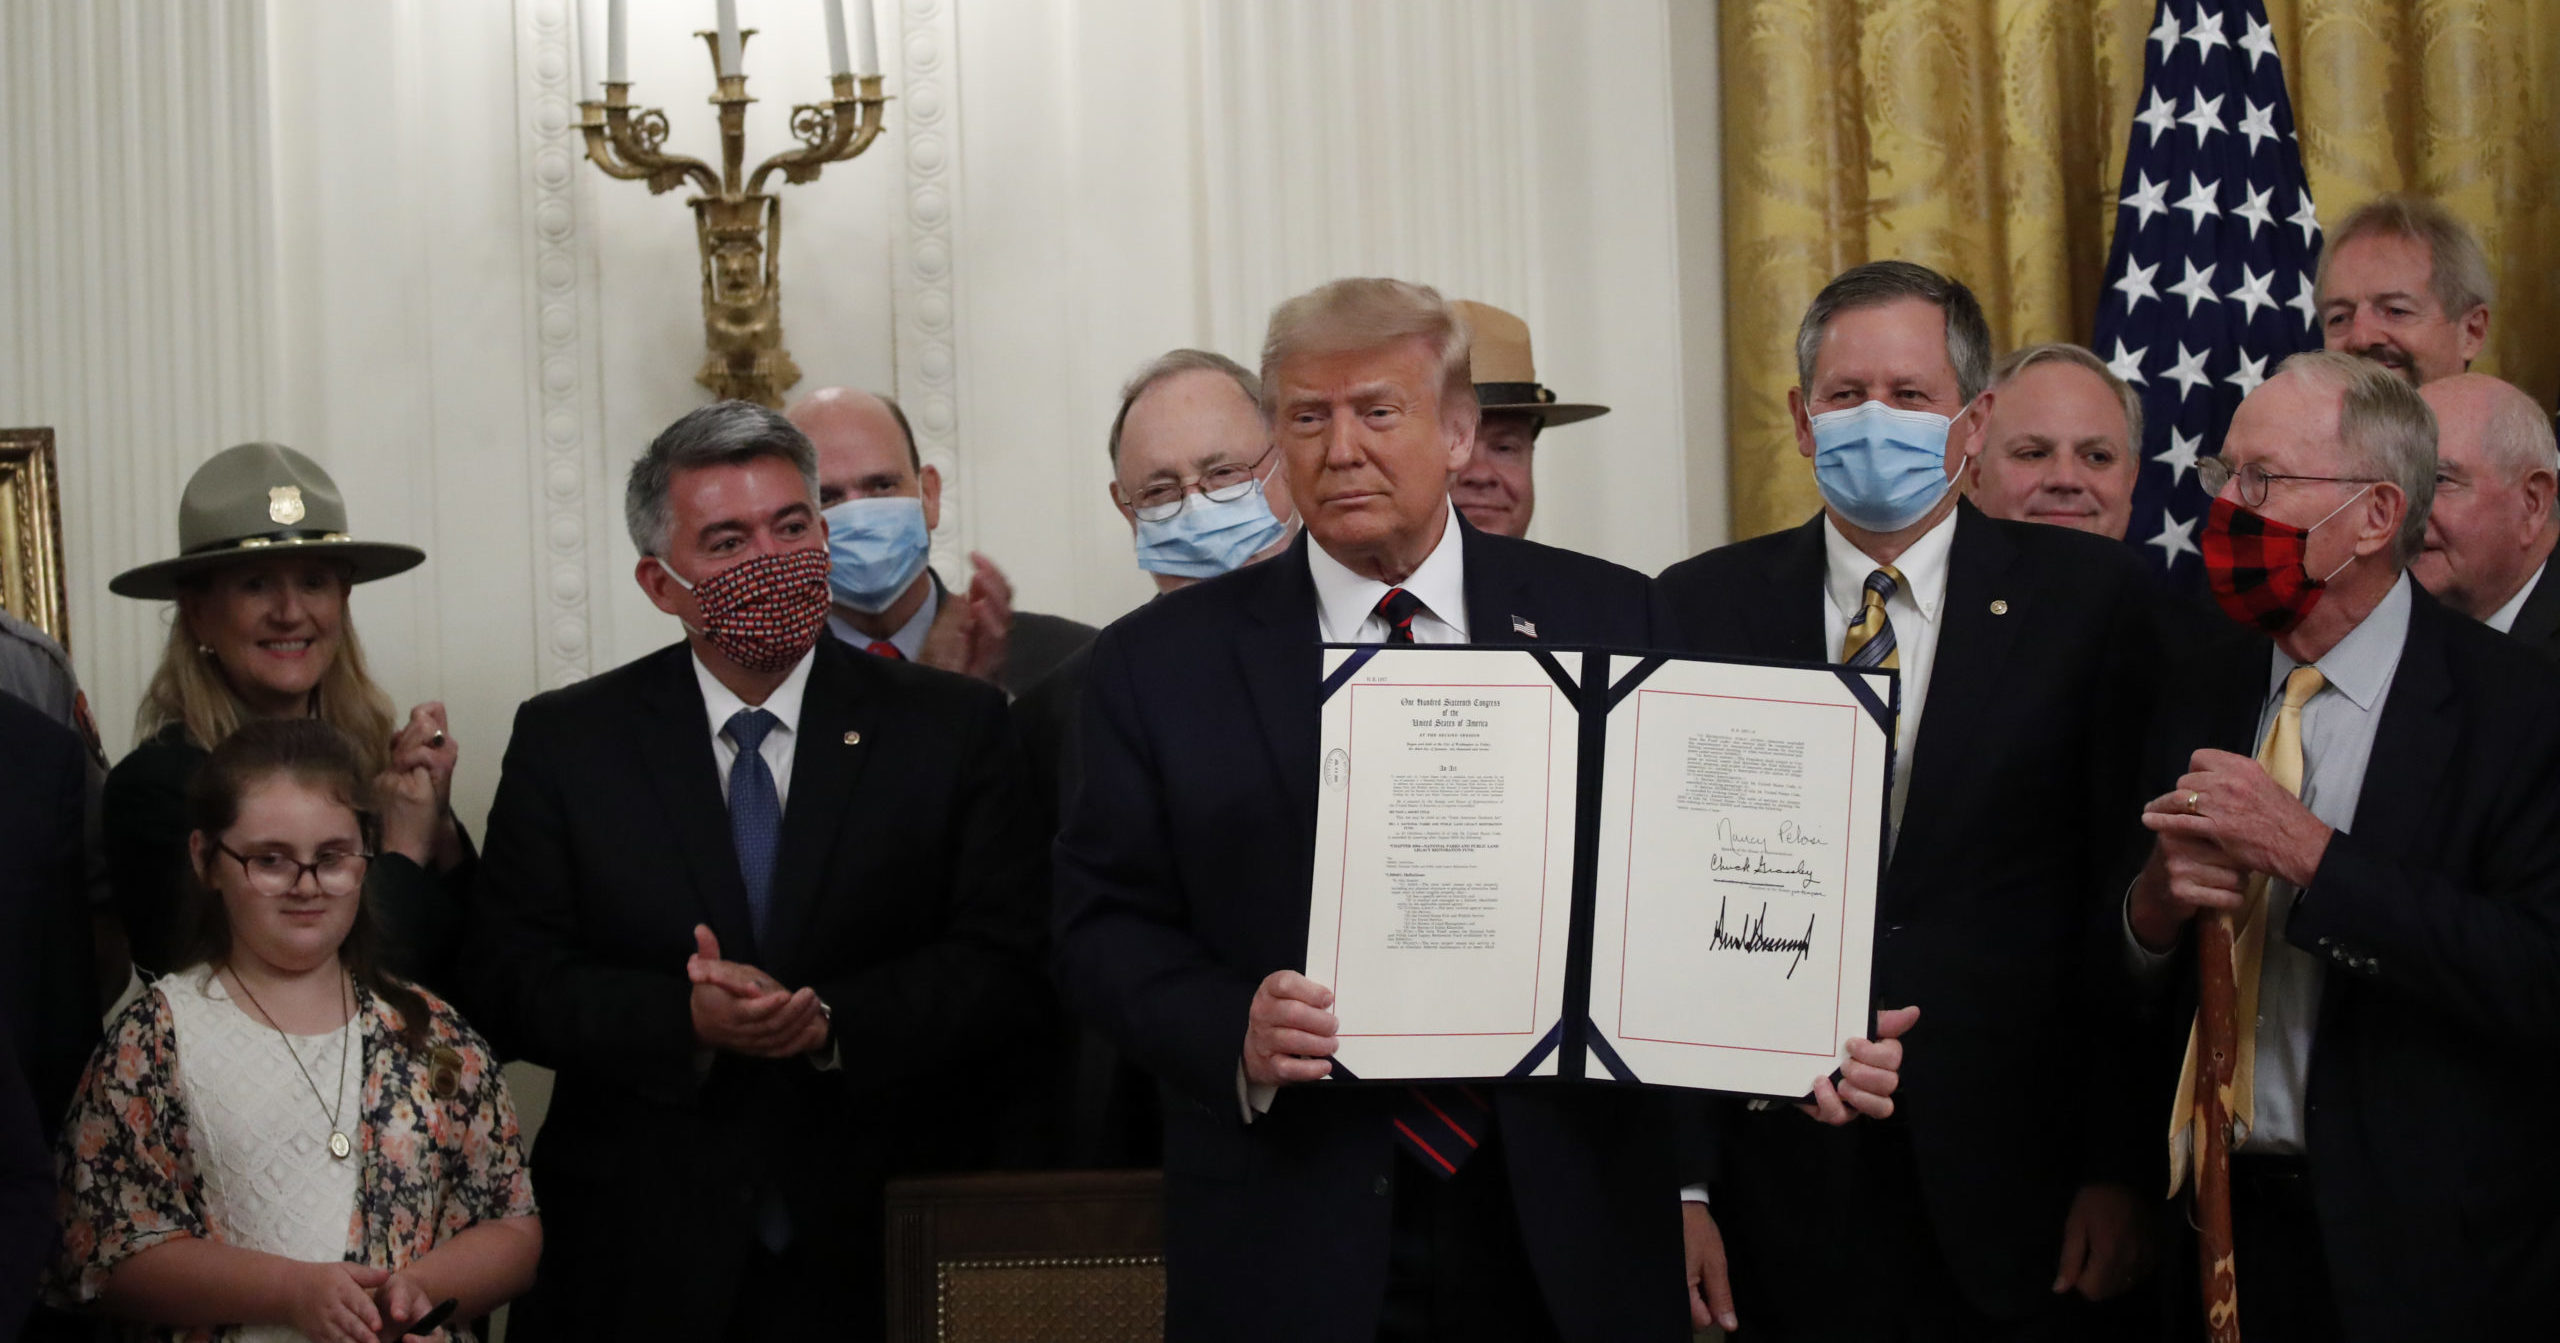 President Donald Trump poses for a photo during a signing ceremony for the Great American Outdoors Act in the East Room of the White House on Aug. 4, 2020, in Washington, D.C.